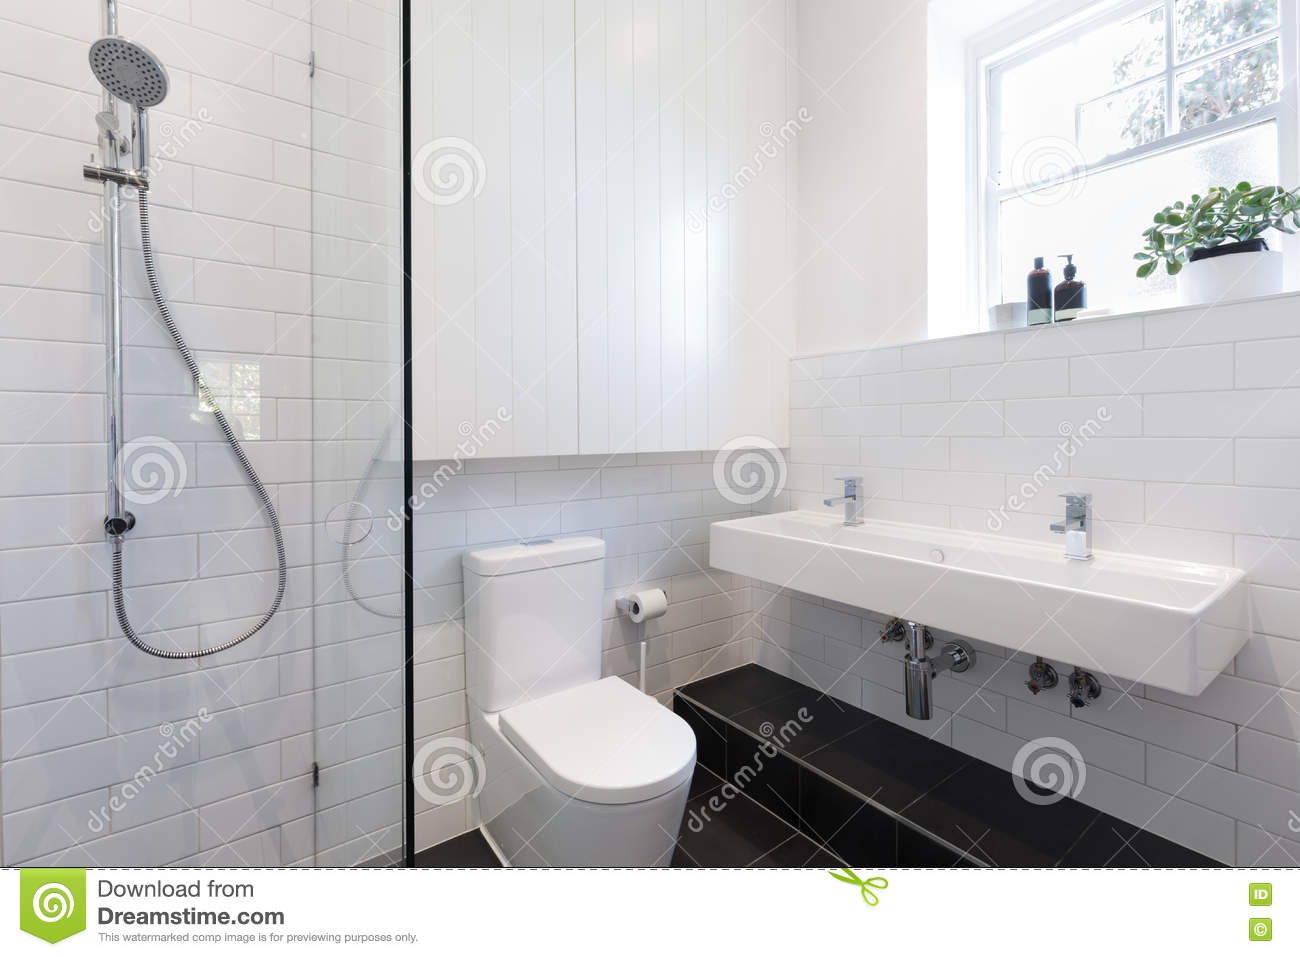 Small Ensuite Bathroom With White Tiling Laid In A Brick Pattern